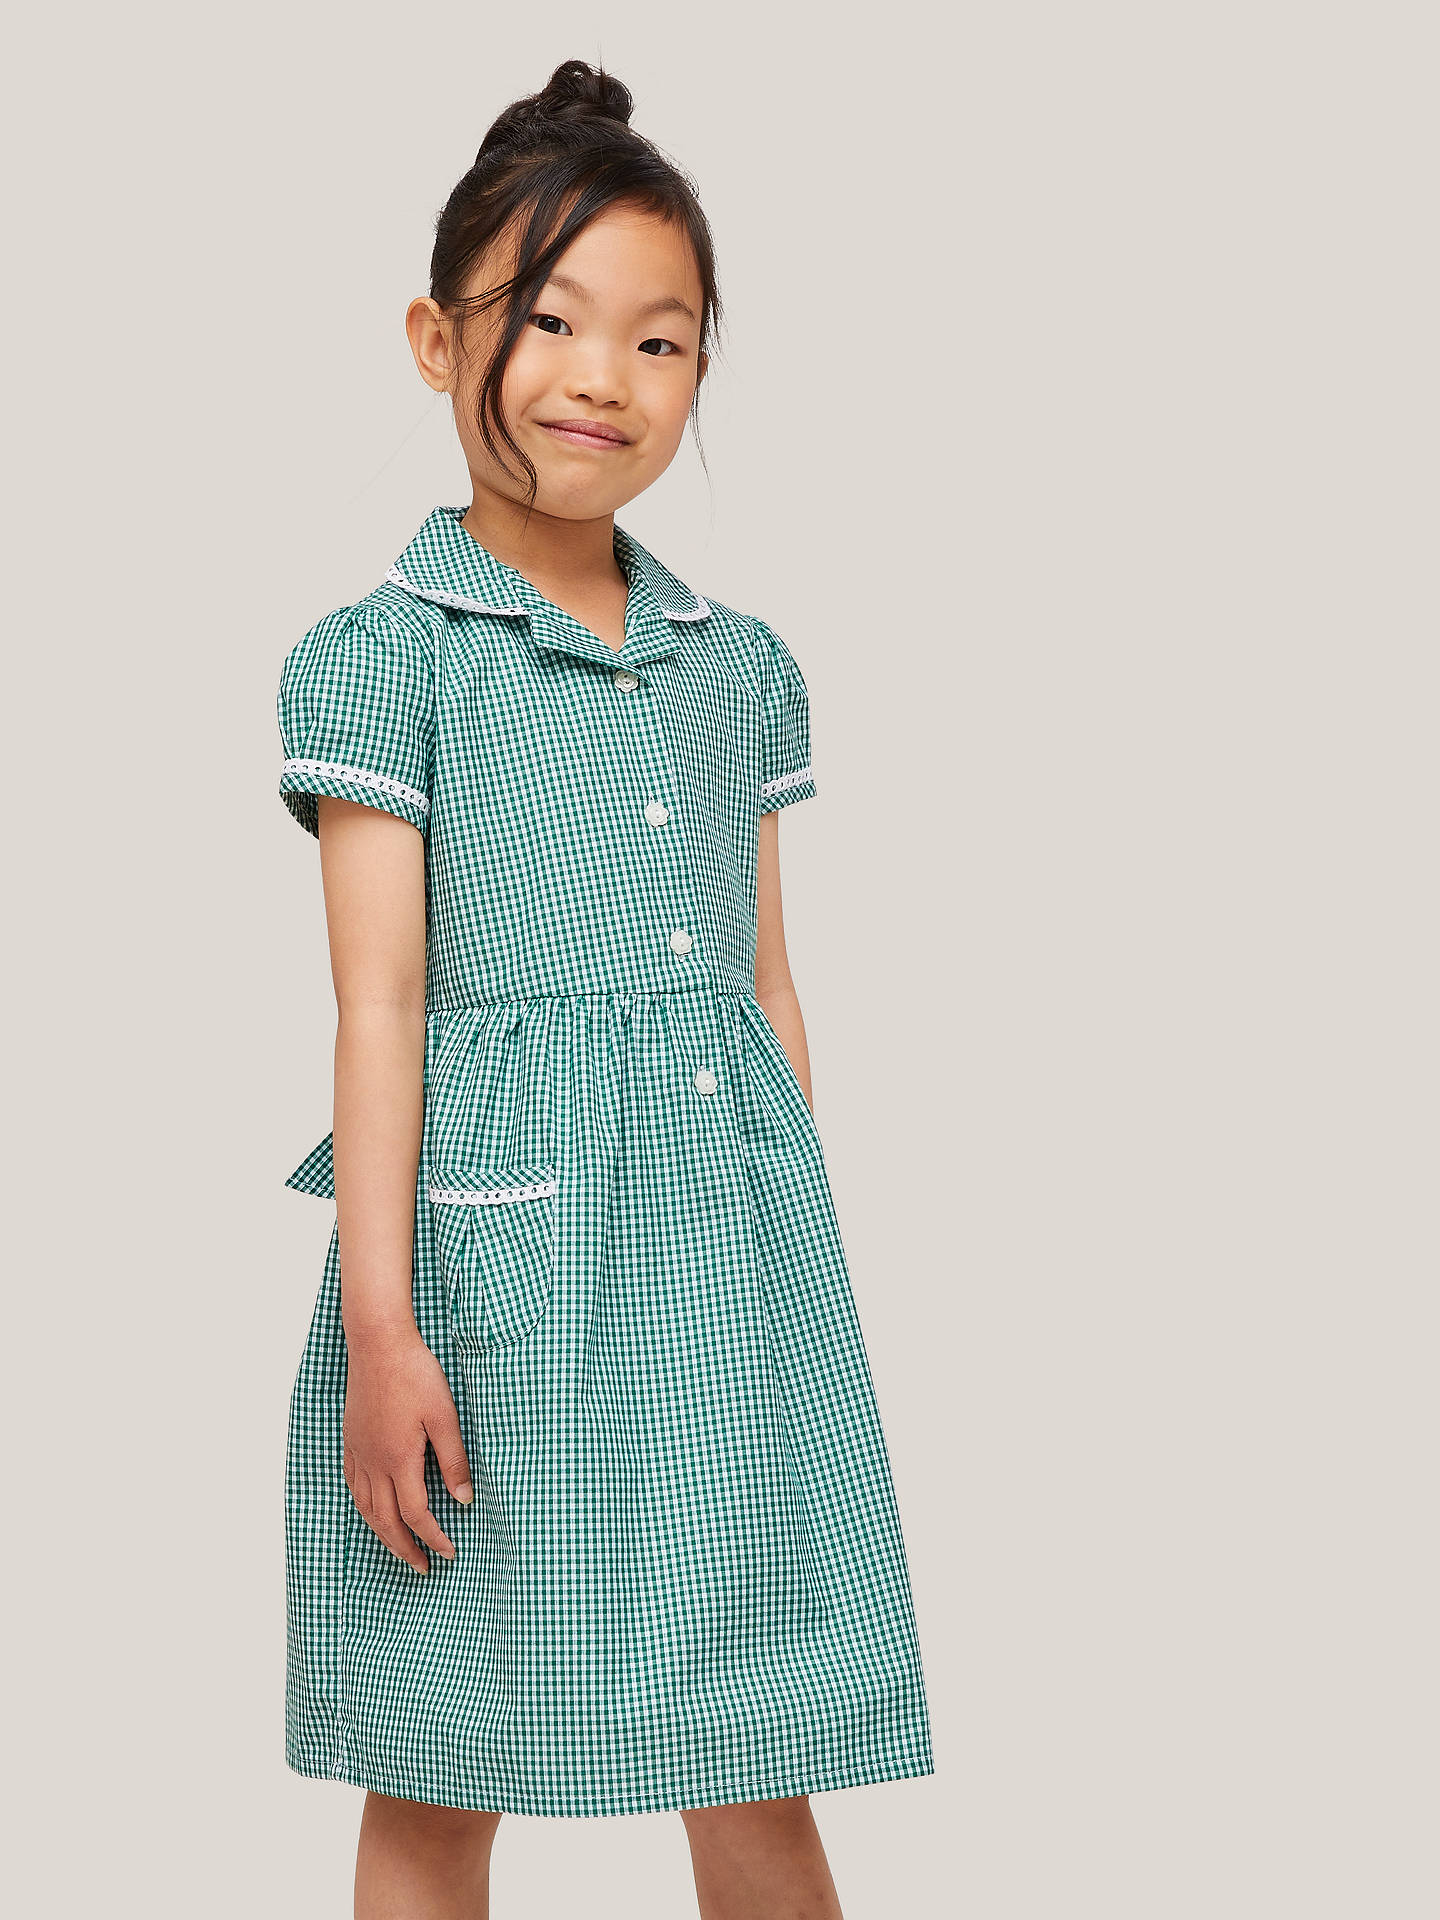 Buy John Lewis & Partners Gingham Cotton School Summer Dress, Green, 6 years Online at johnlewis.com